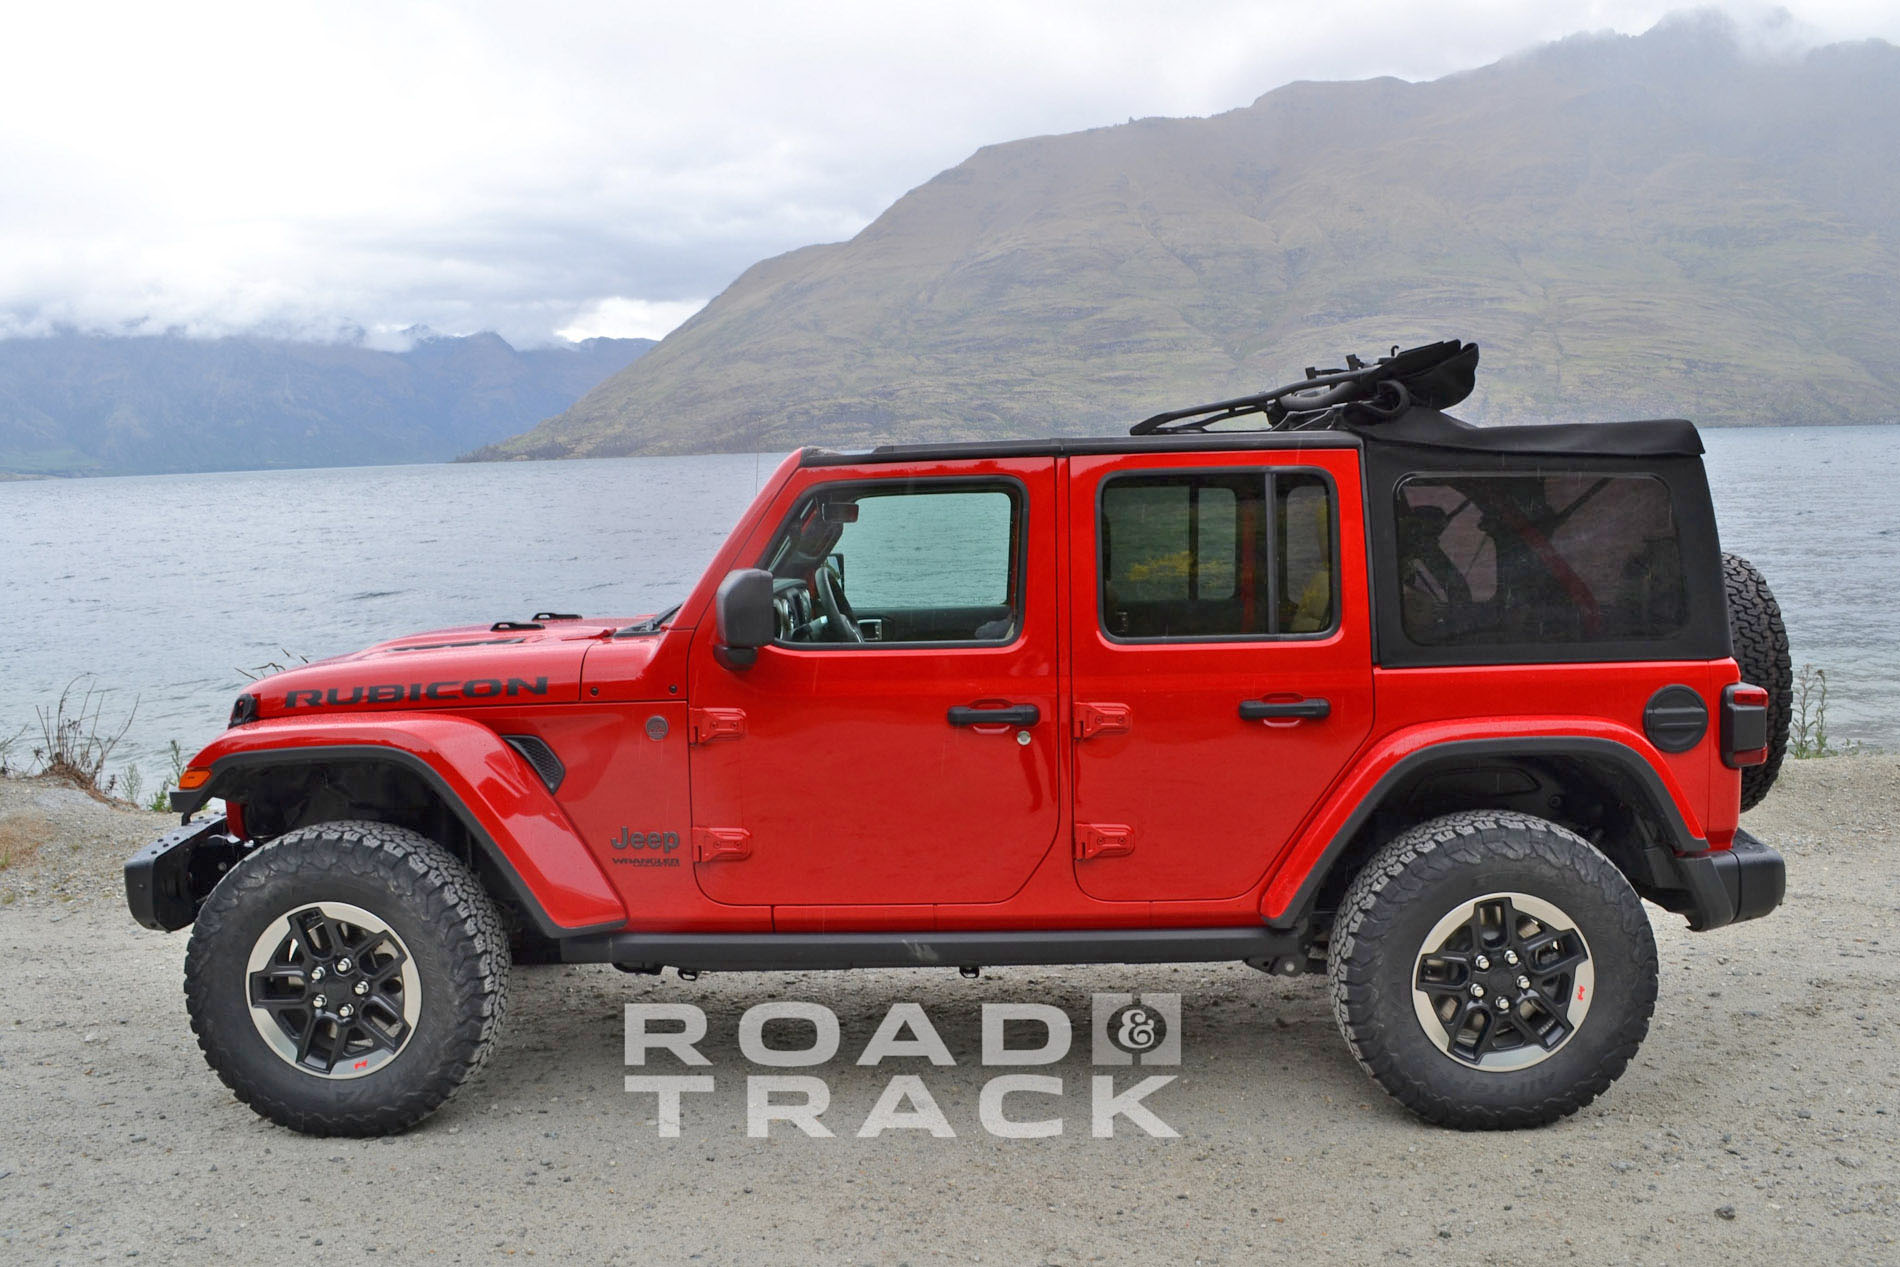 F A C Ed A Ecf D B C in addition  together with Jeep Gladiator Rear View together with Tesla Pickup Rendered As A Luxury Electric Truck furthermore Z B Jeep J Gladiator Binterior View Nice. on 2018 jeep wrangler pickup truck